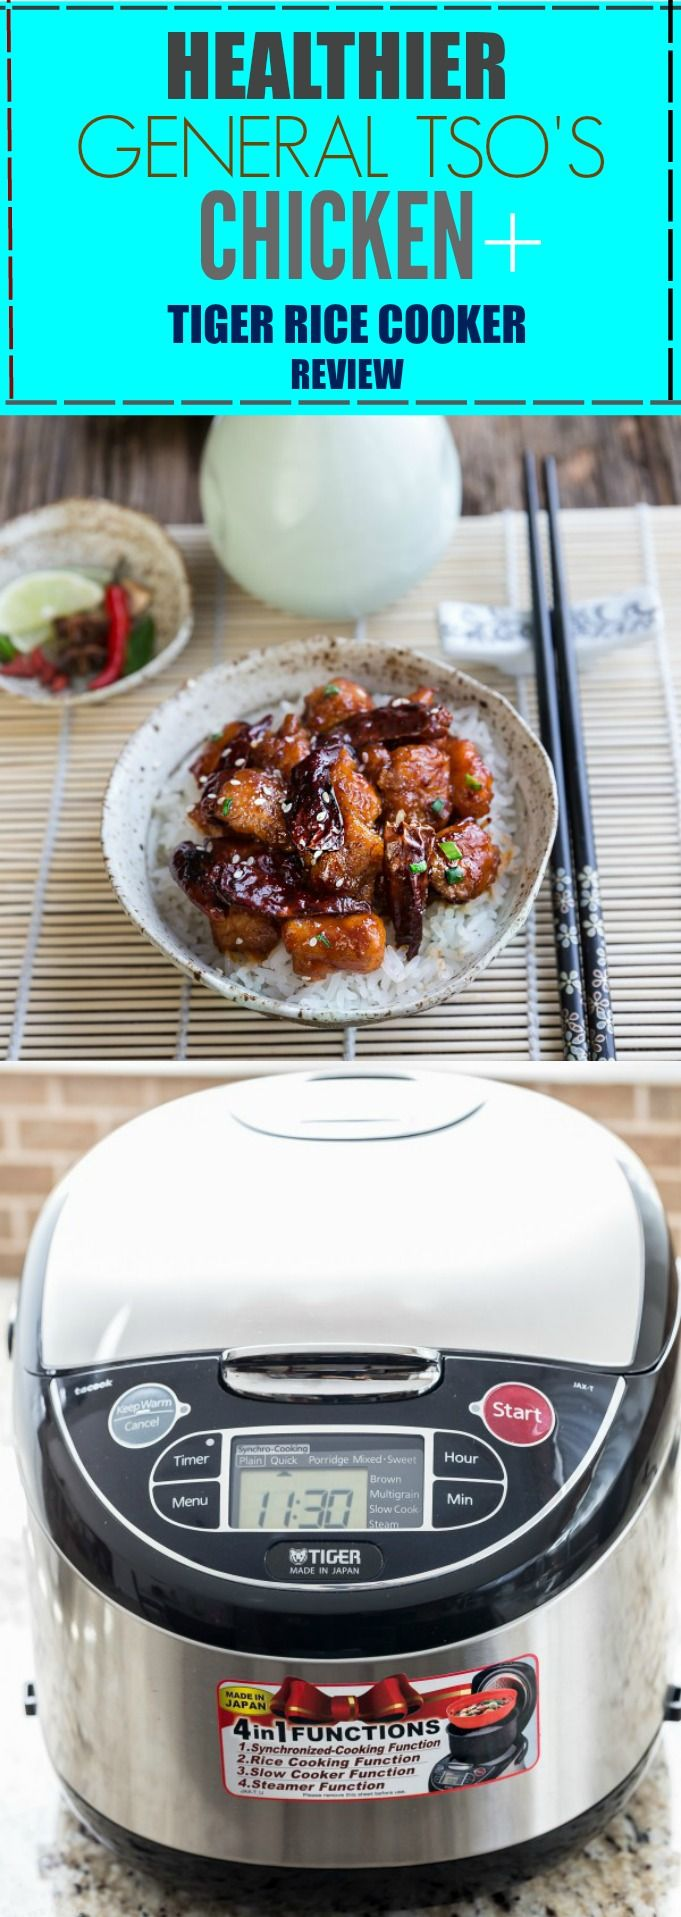 Healthier General Tso's Chicken with Tiger JAX-T18U Rice Cooker & PDU-A50U Electric Water Boiler Review with Video @tigercorp #ad